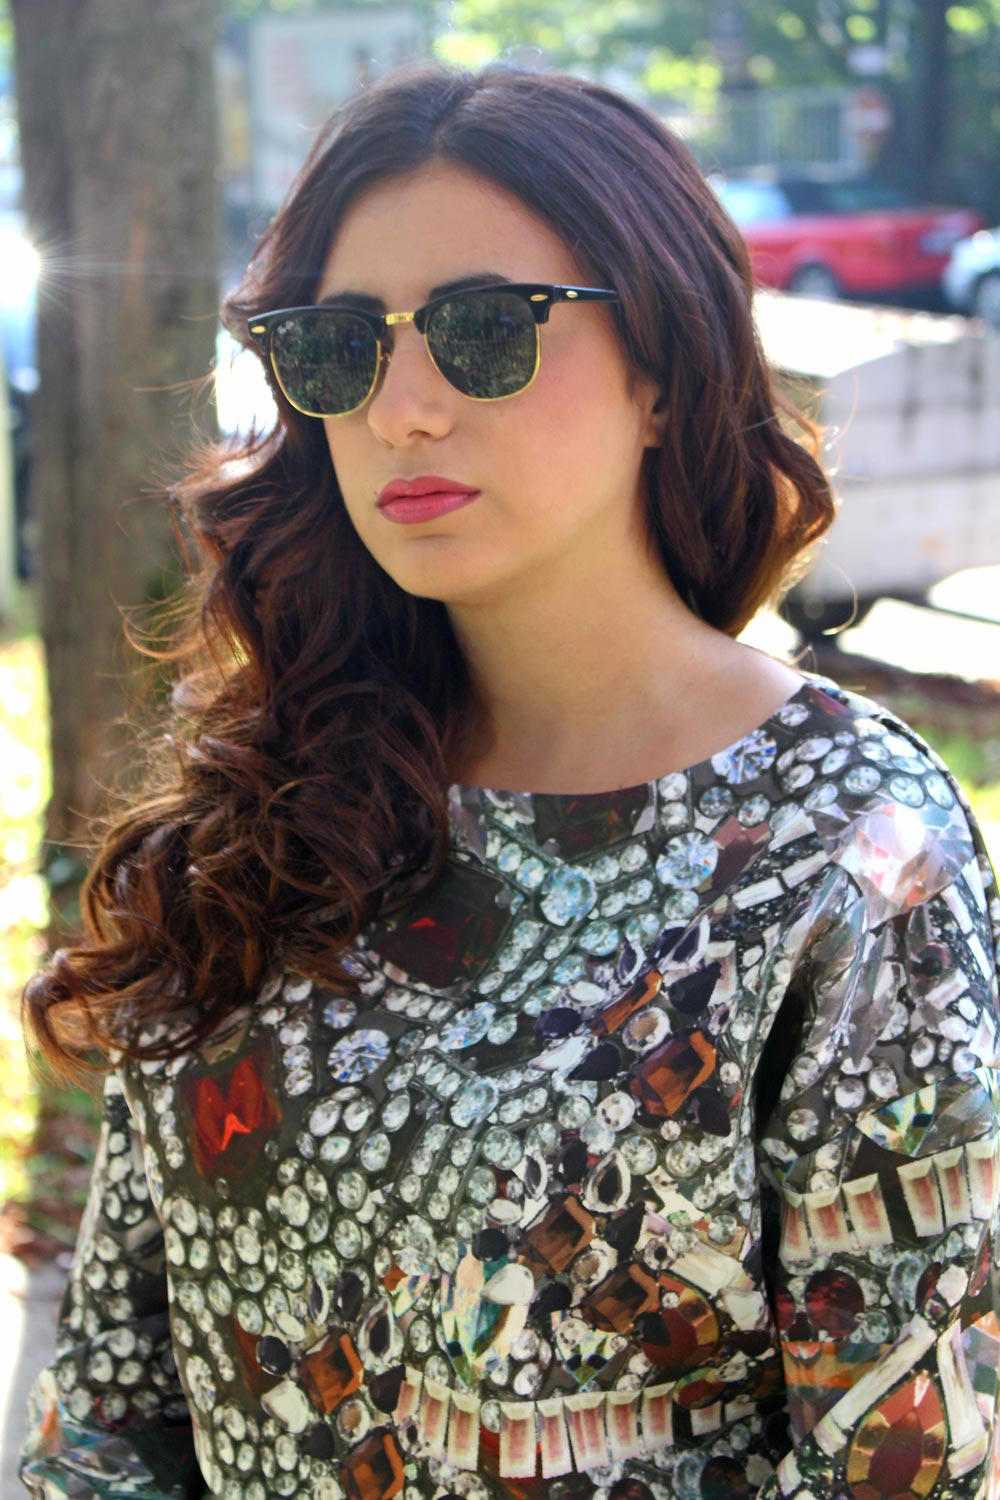 Moments of Fashion, Fashion Blog, München, Ray-Ban, H&M